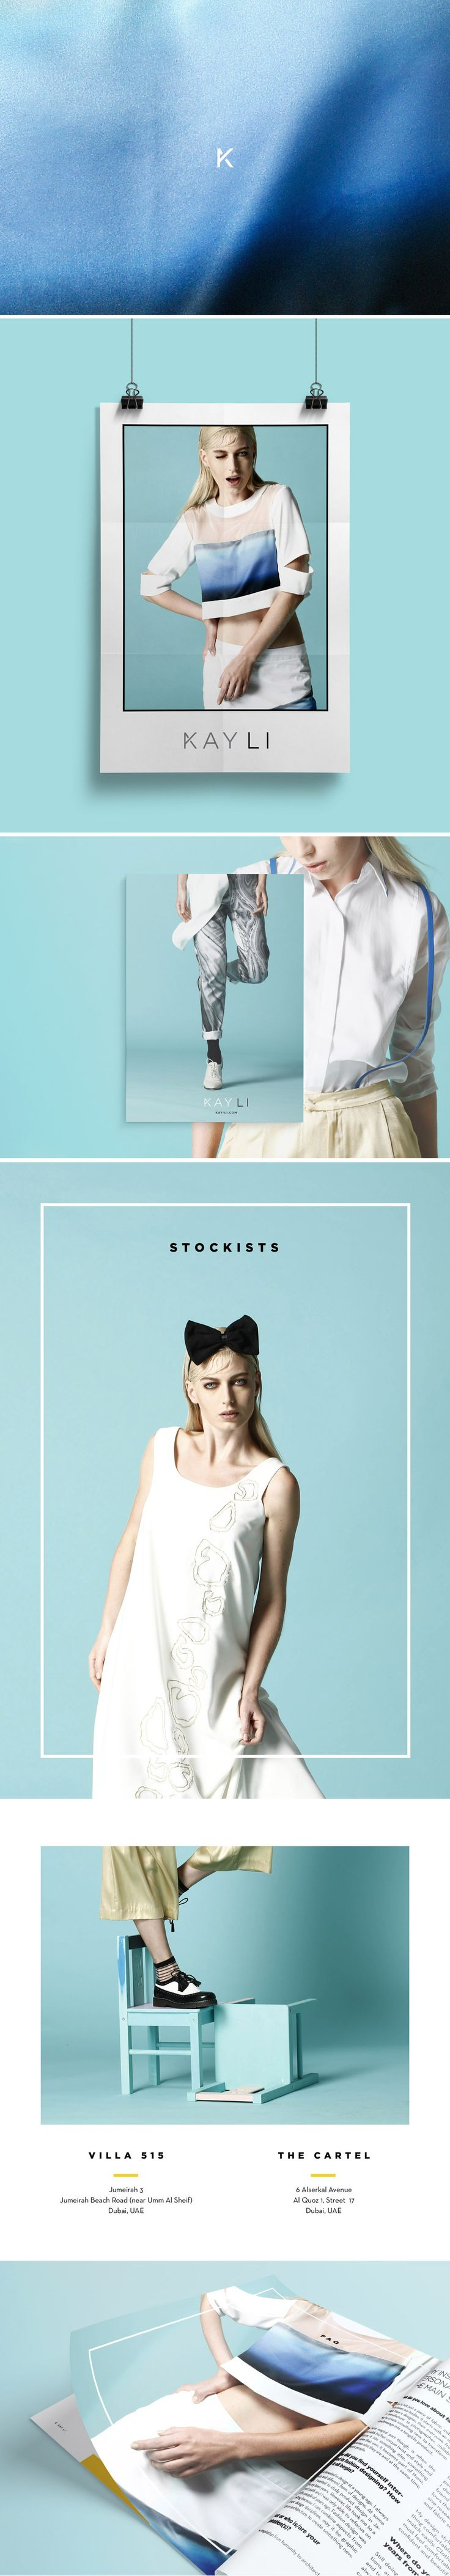 Branch | Kay Li Fashion Media Kit